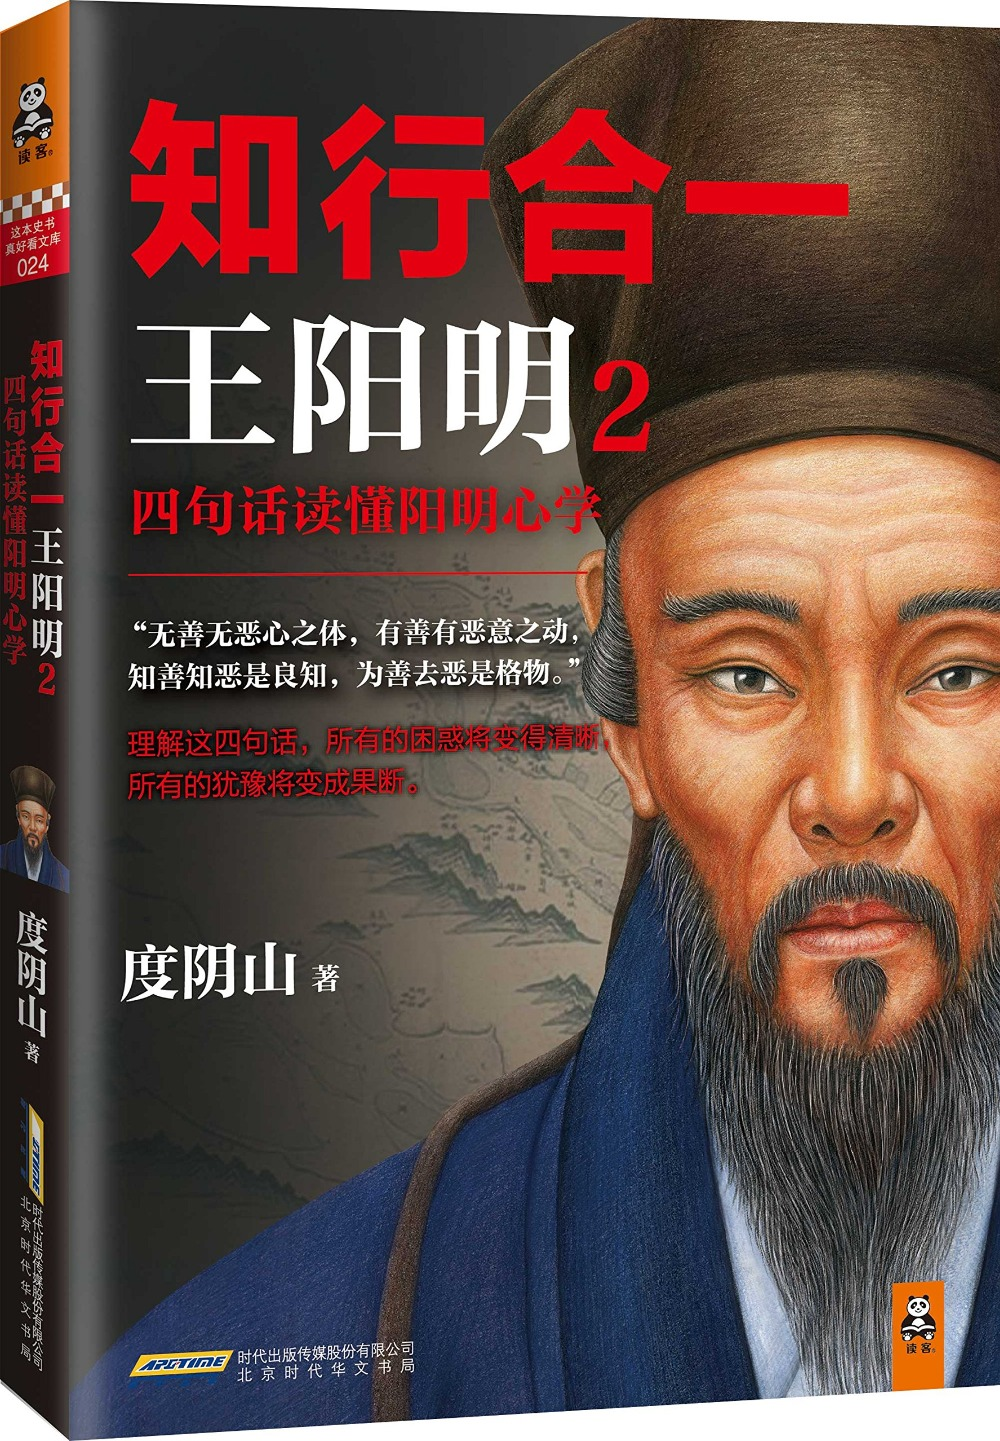 Wang yangming Biography book : four words read